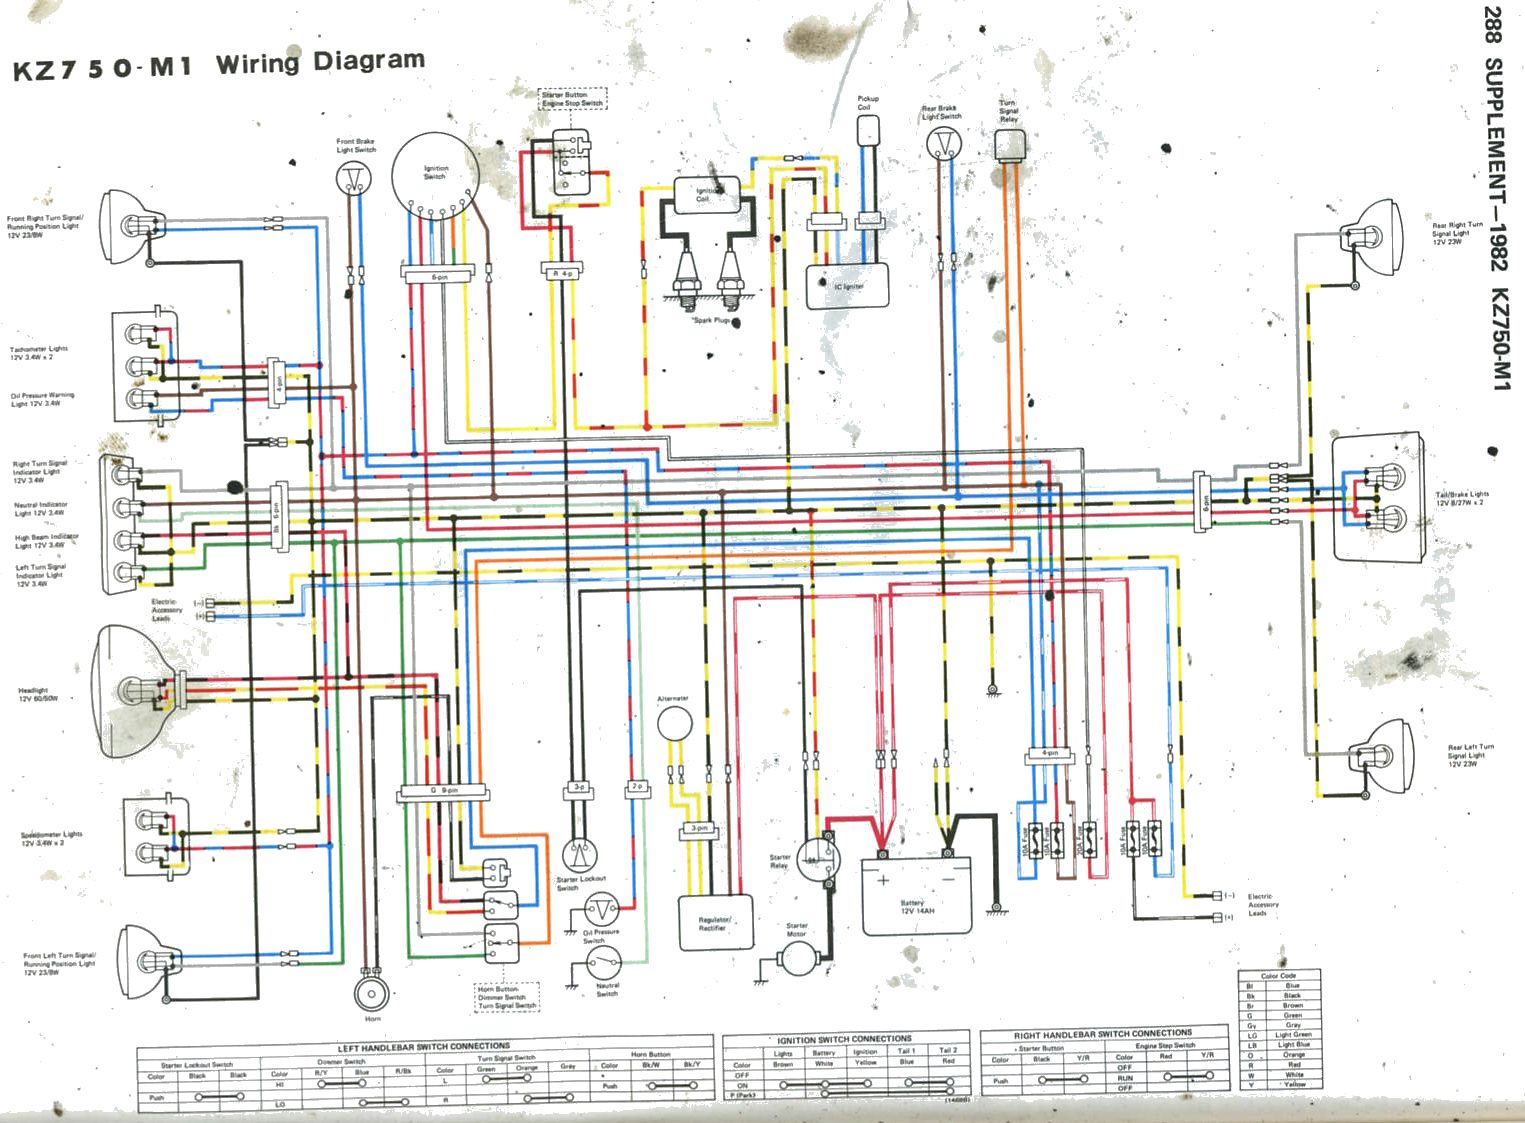 1980 kz1000 coil and spark plug diagram not lossing wiring diagram • kz1000 wiring diagram basic wiring diagram todays rh 3 13 13 1813weddingbarn com